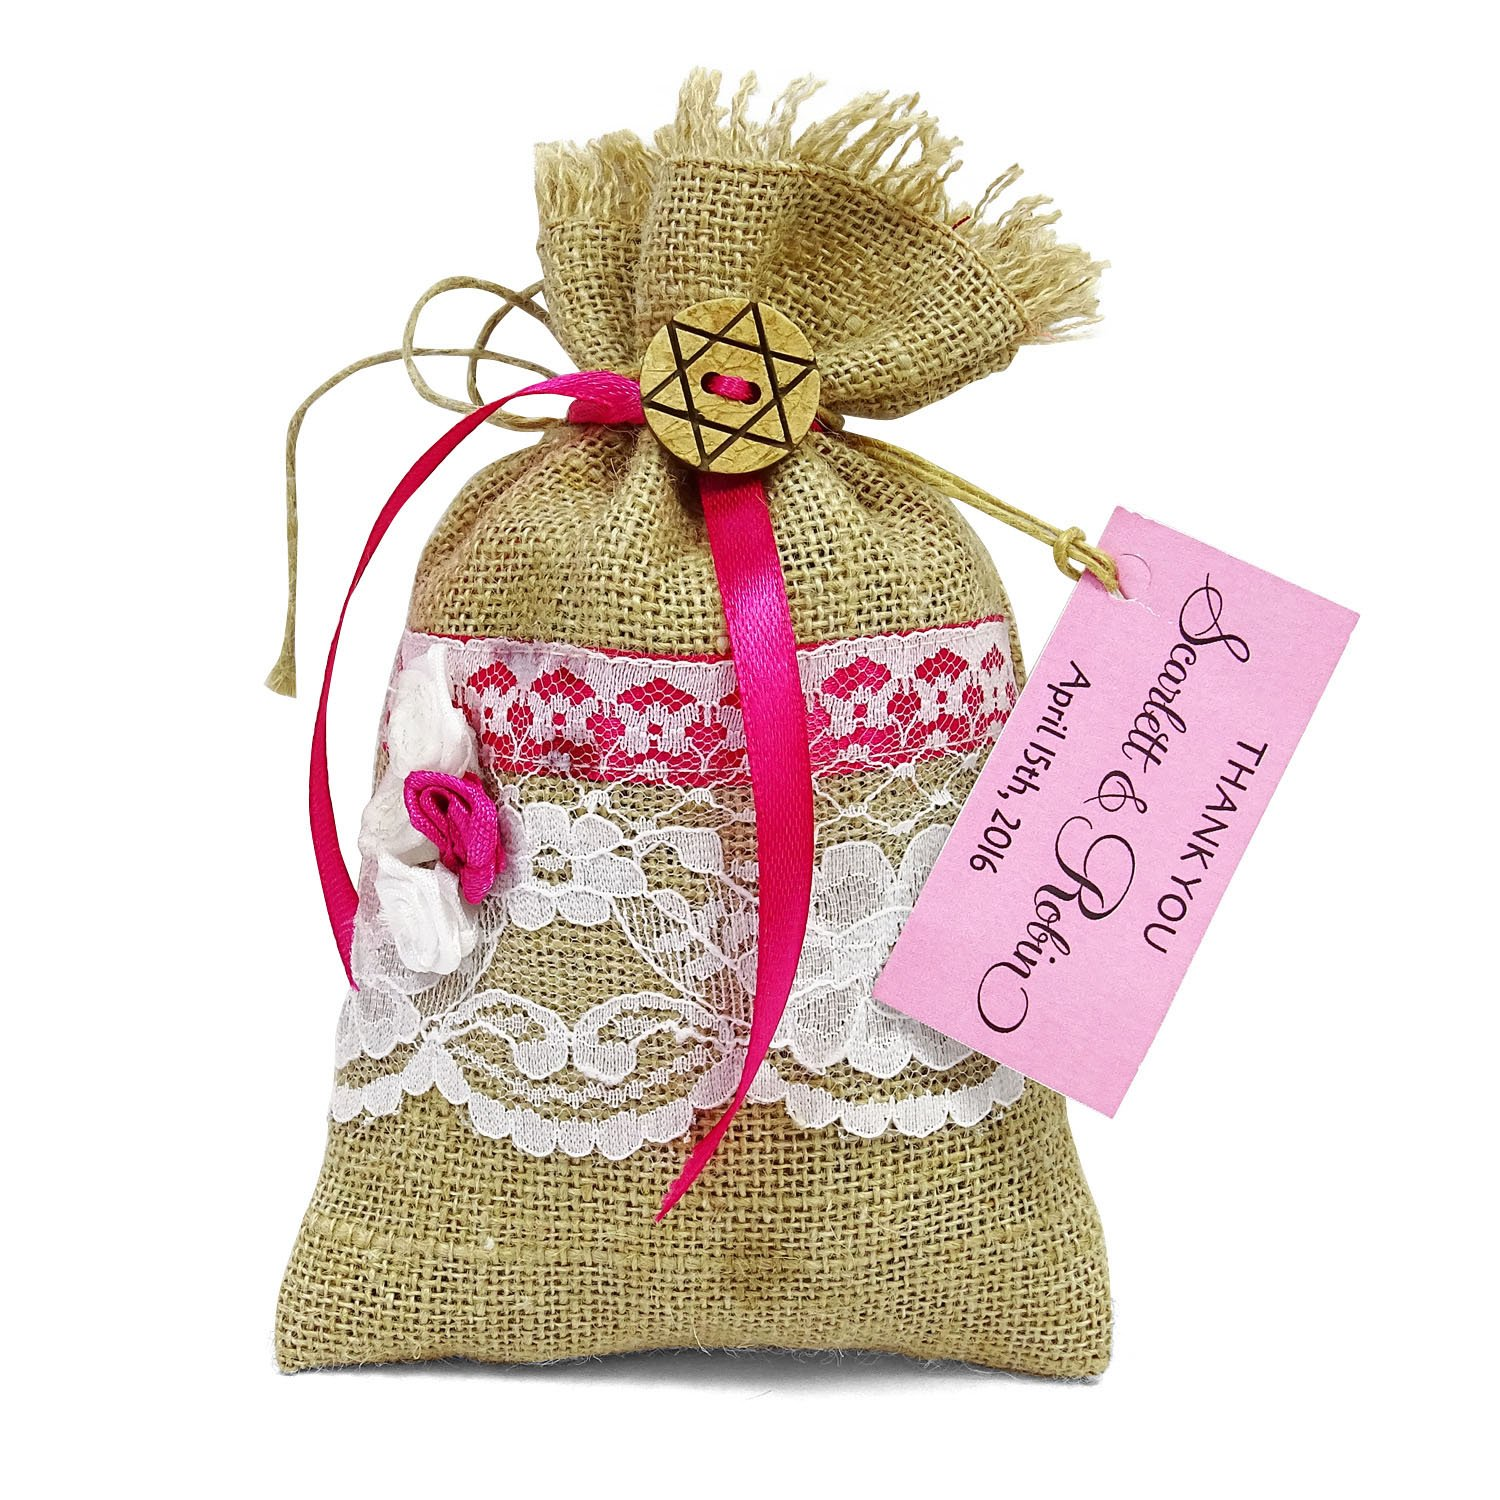 Amazon.com: 20 Burlap Drawstring Gift Pouch Small Jute Bags Wedding ...